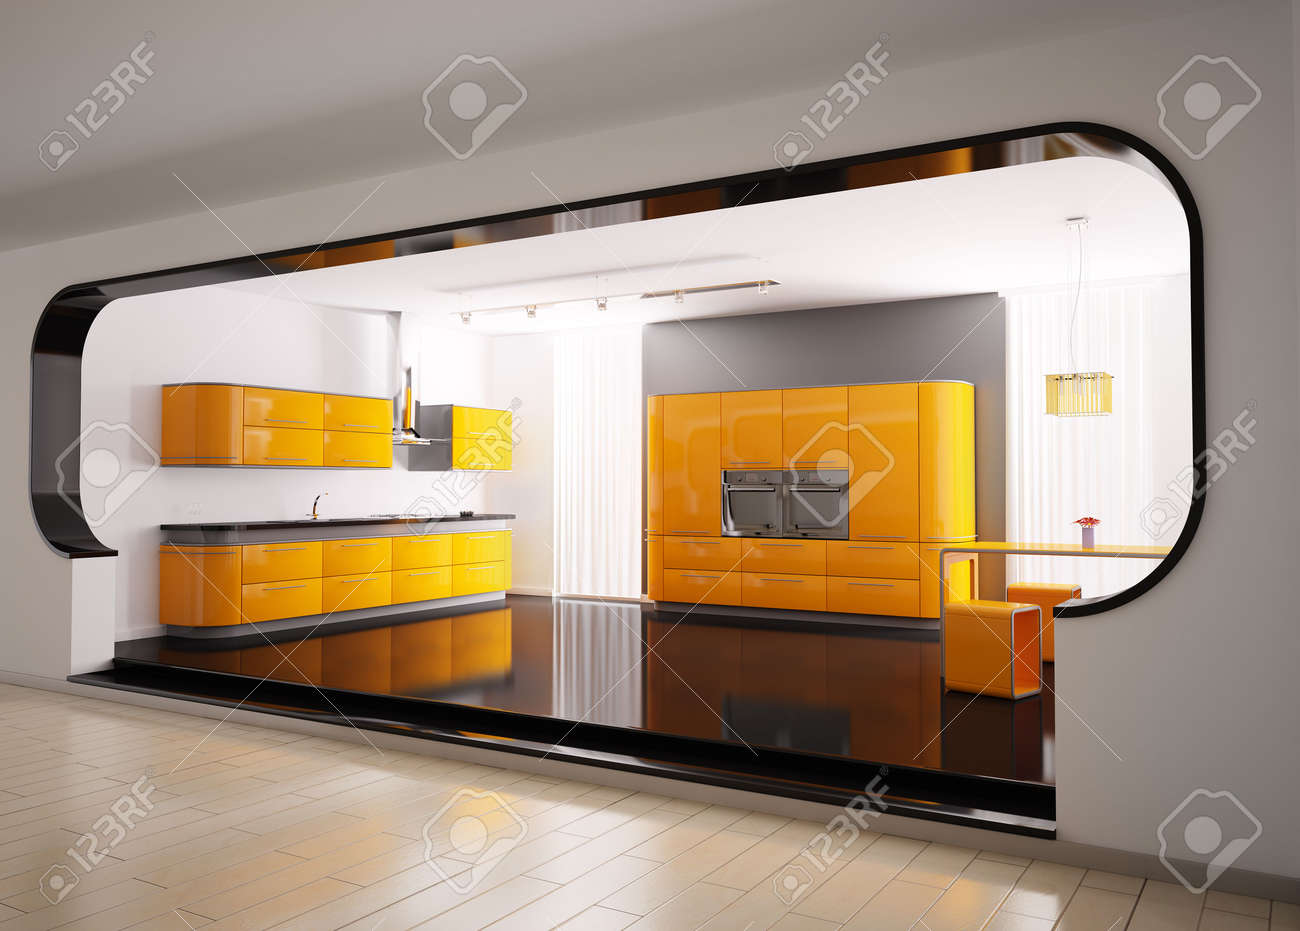 Interior of modern orange gray kitchen 3d Stock Photo - 6340577